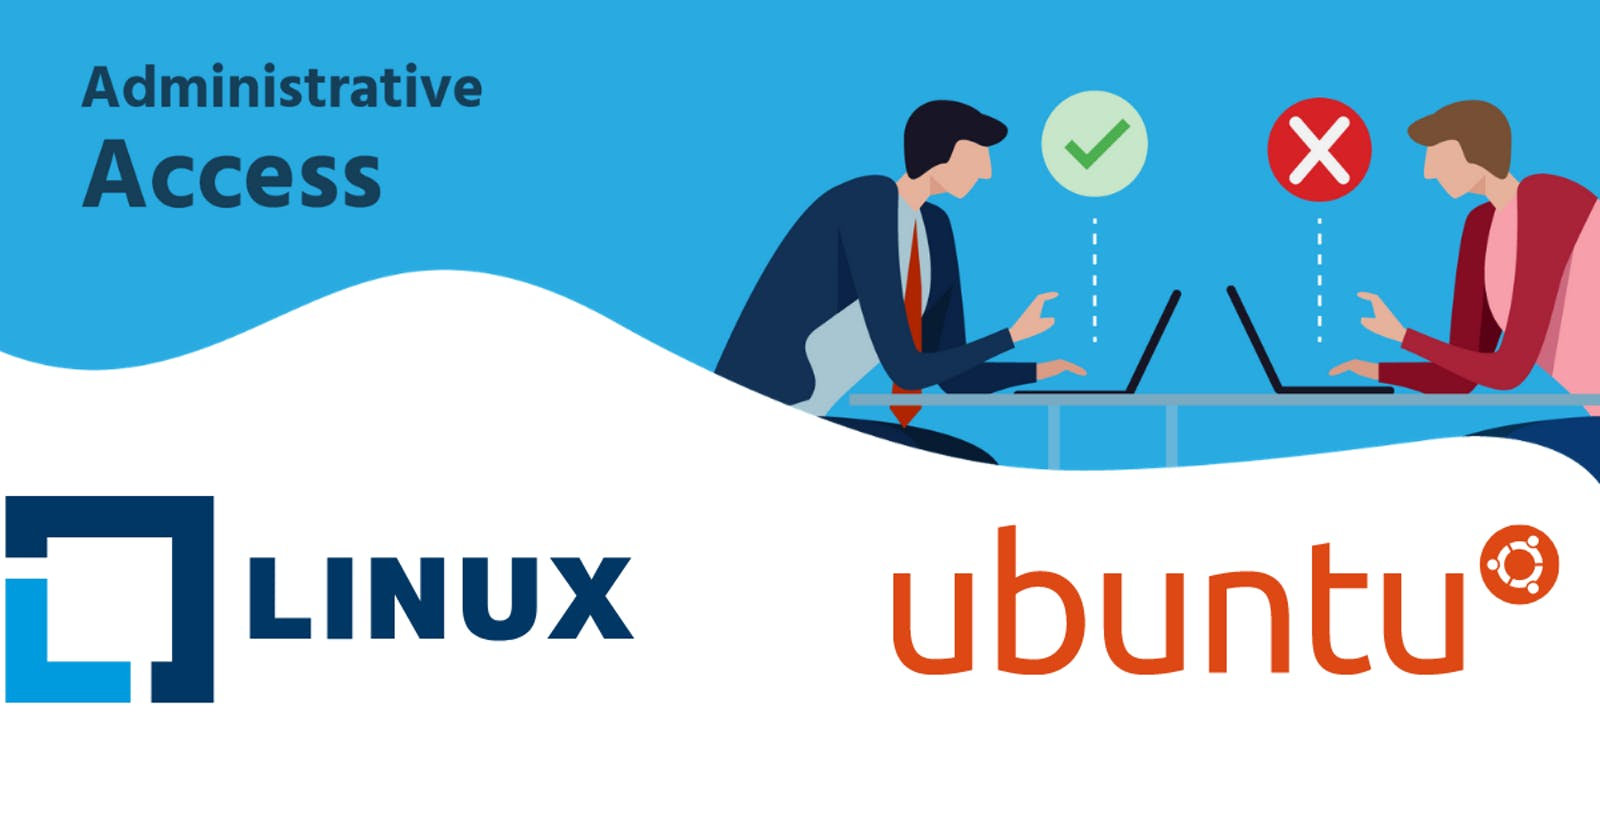 Administrative Access Commands On Linux